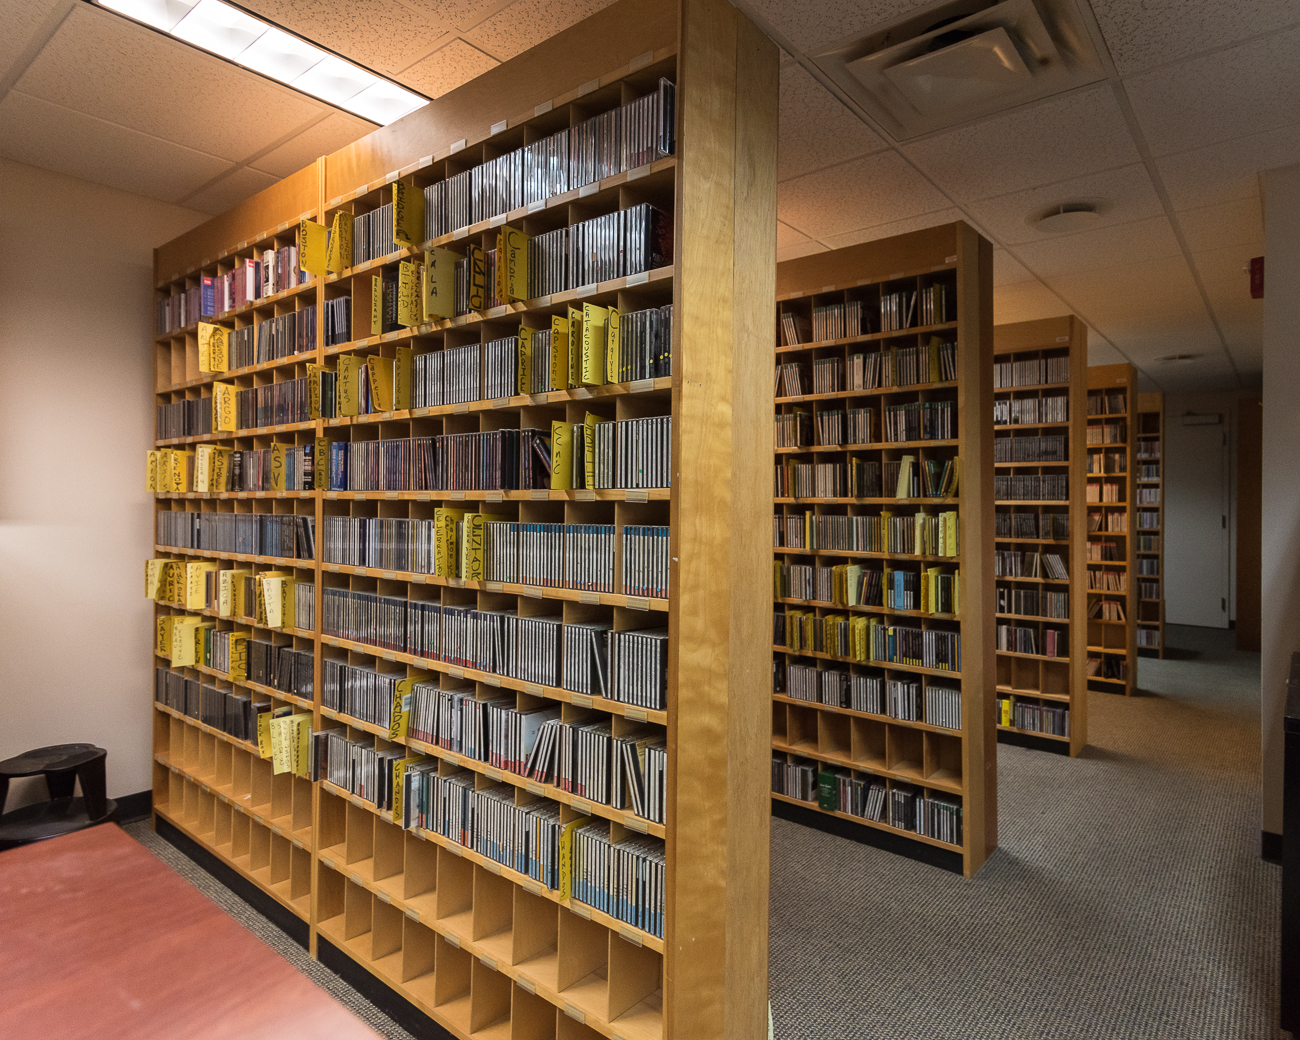 Every bit of music WVXU's neighbor station, WGUC, plays is stored in a physical library. Digital copies of each track are used, but the station is required to maintain the physical copies. There are roughly 8000 total CDs in the library, and WVXU has access to pull music from it when needed. / Image: Phil Armstrong, Cincinnati Refined // Published: 12.12.17